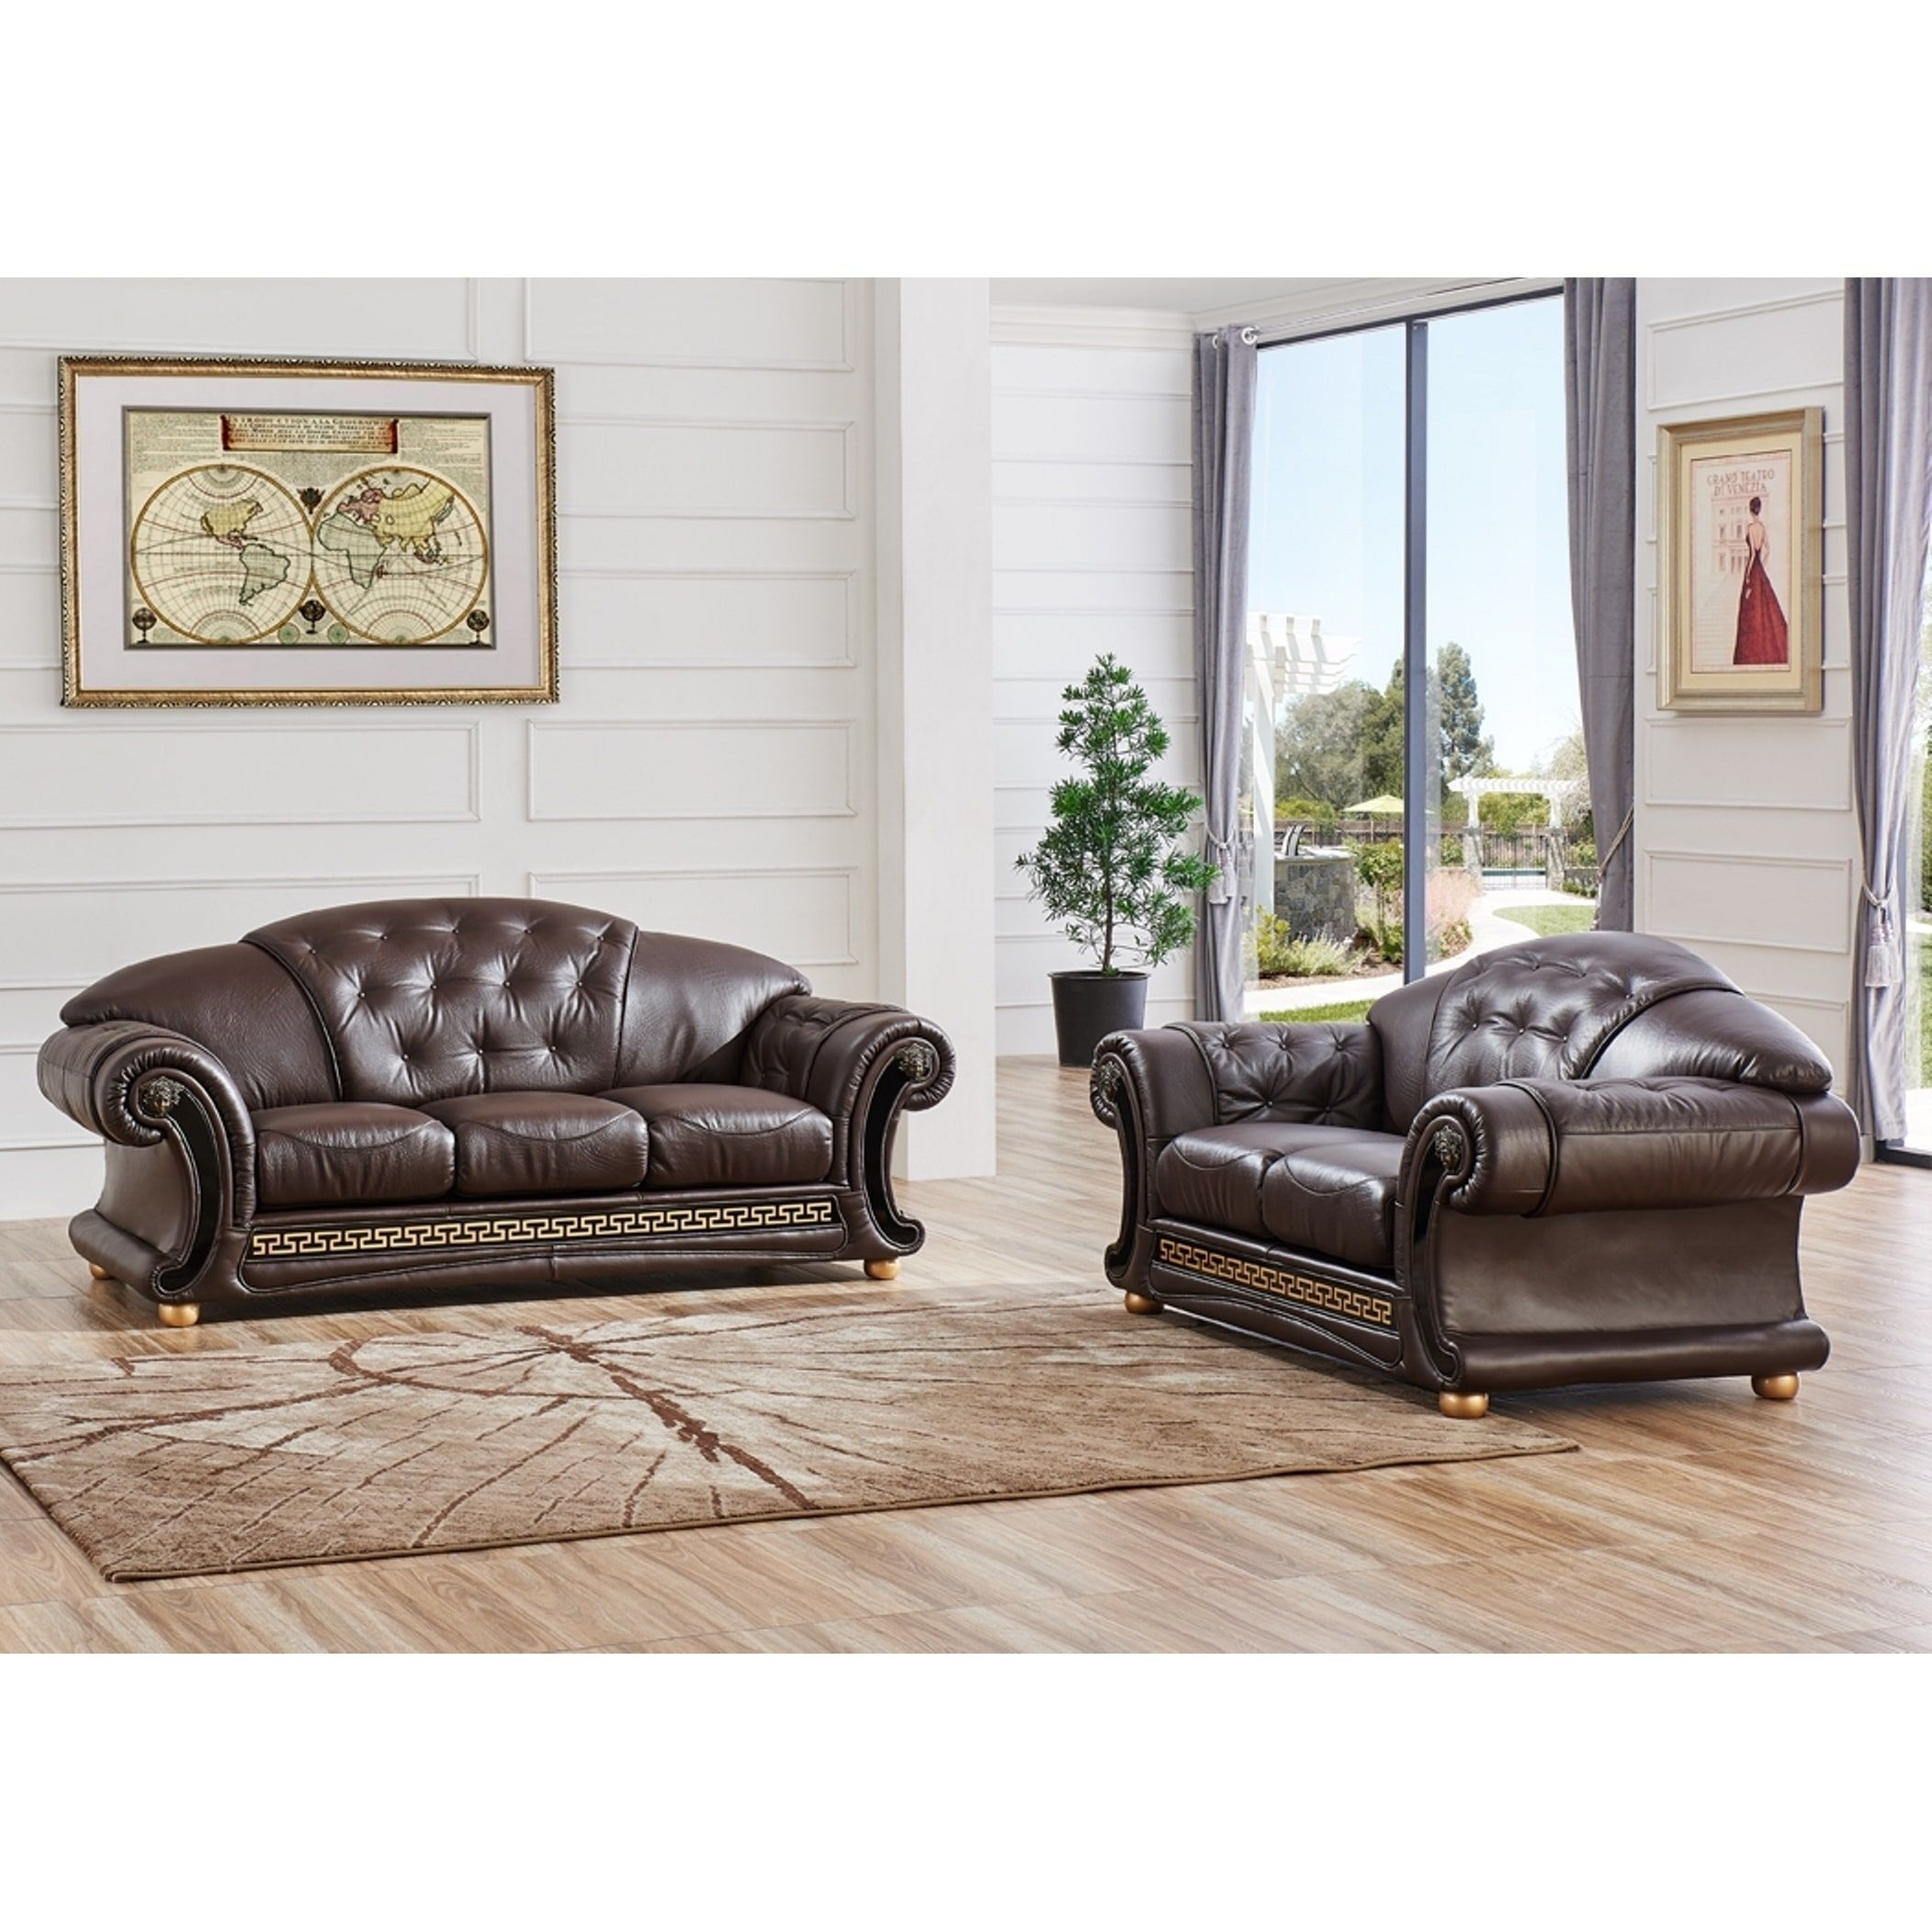 Luca Home 2 Piece Split Brown Leather Living Room Set (Brown Half For Clyde Saddle 3 Piece Power Reclining Sectionals With Power Headrest & Usb (Image 21 of 25)